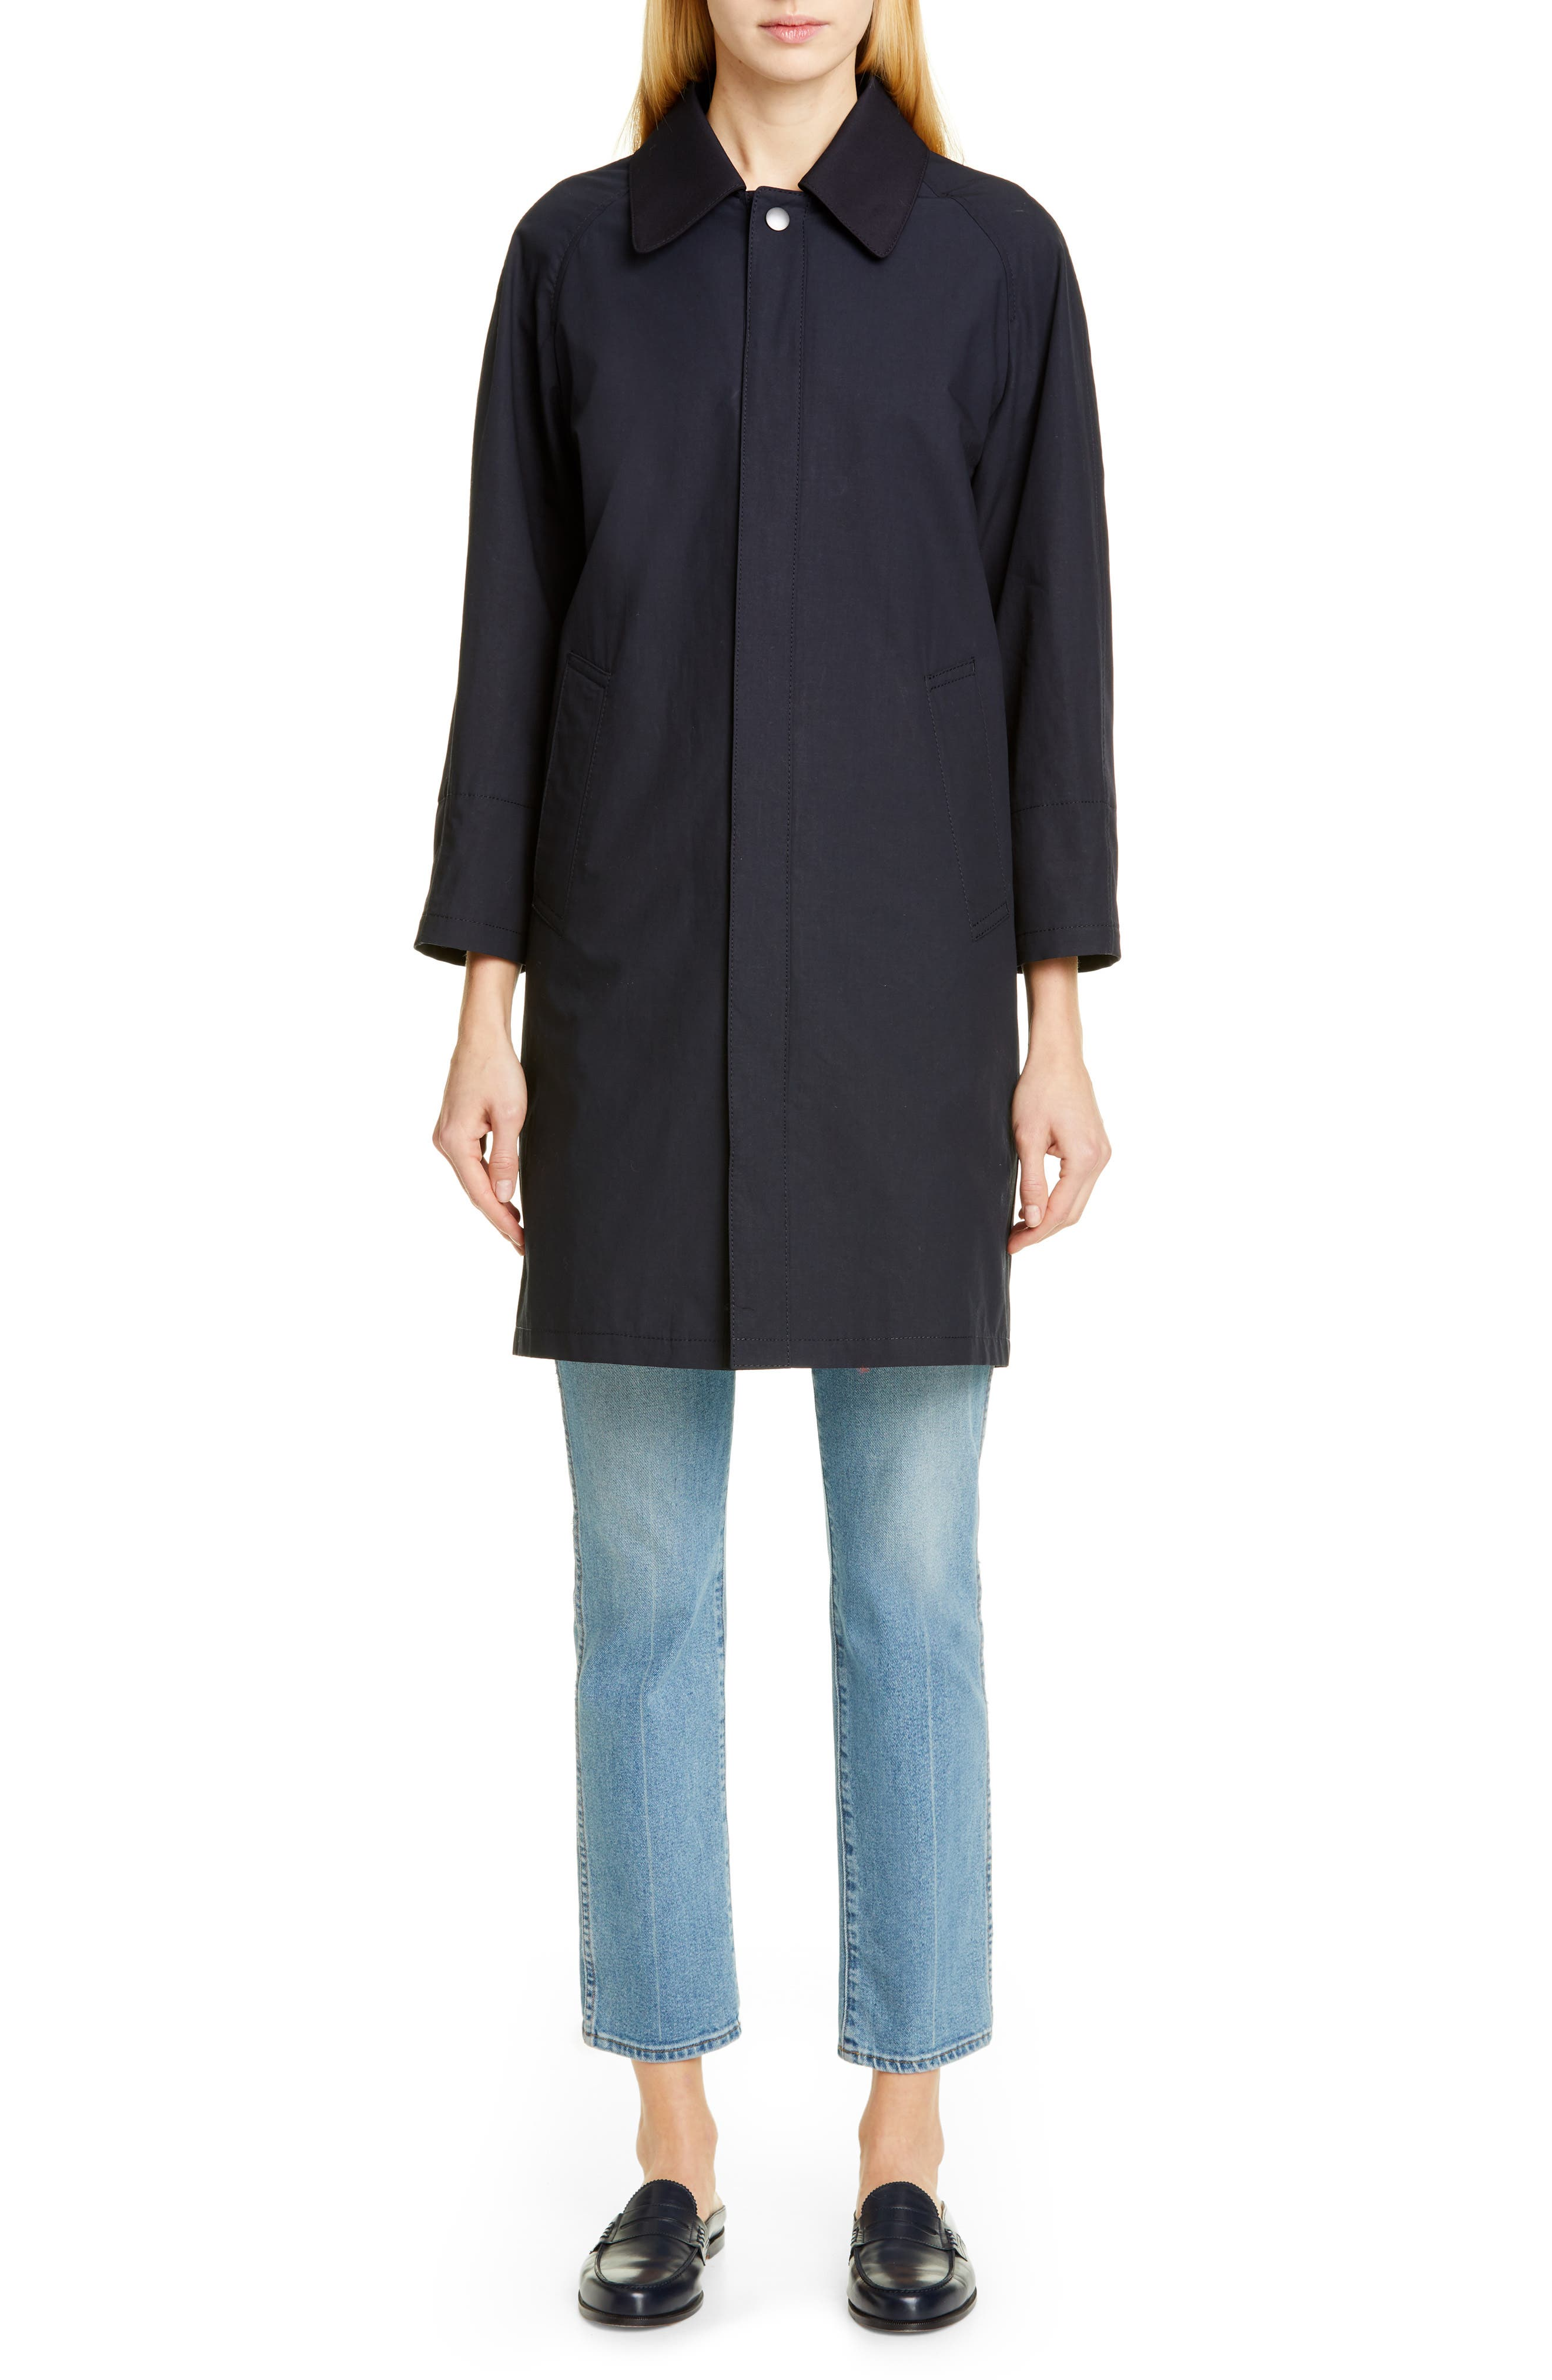 TRICOT COMME DES GARÇONS, Wool Cab Coat with Print Lining, Alternate thumbnail 7, color, NAVY